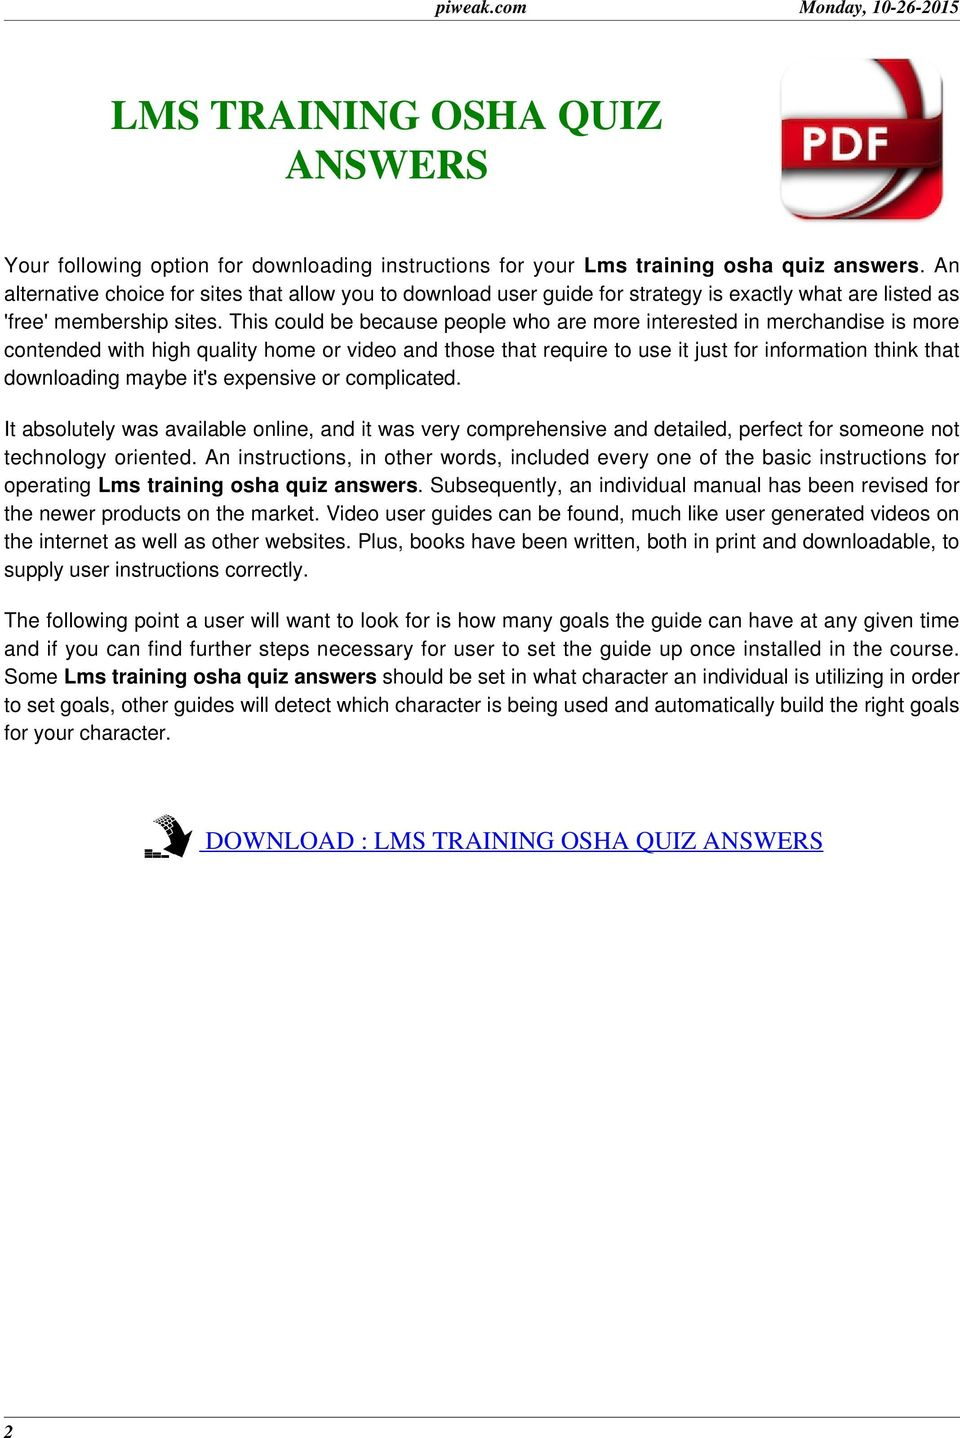 LMS TRAINING OSHA QUIZ ANSWERS - PDF